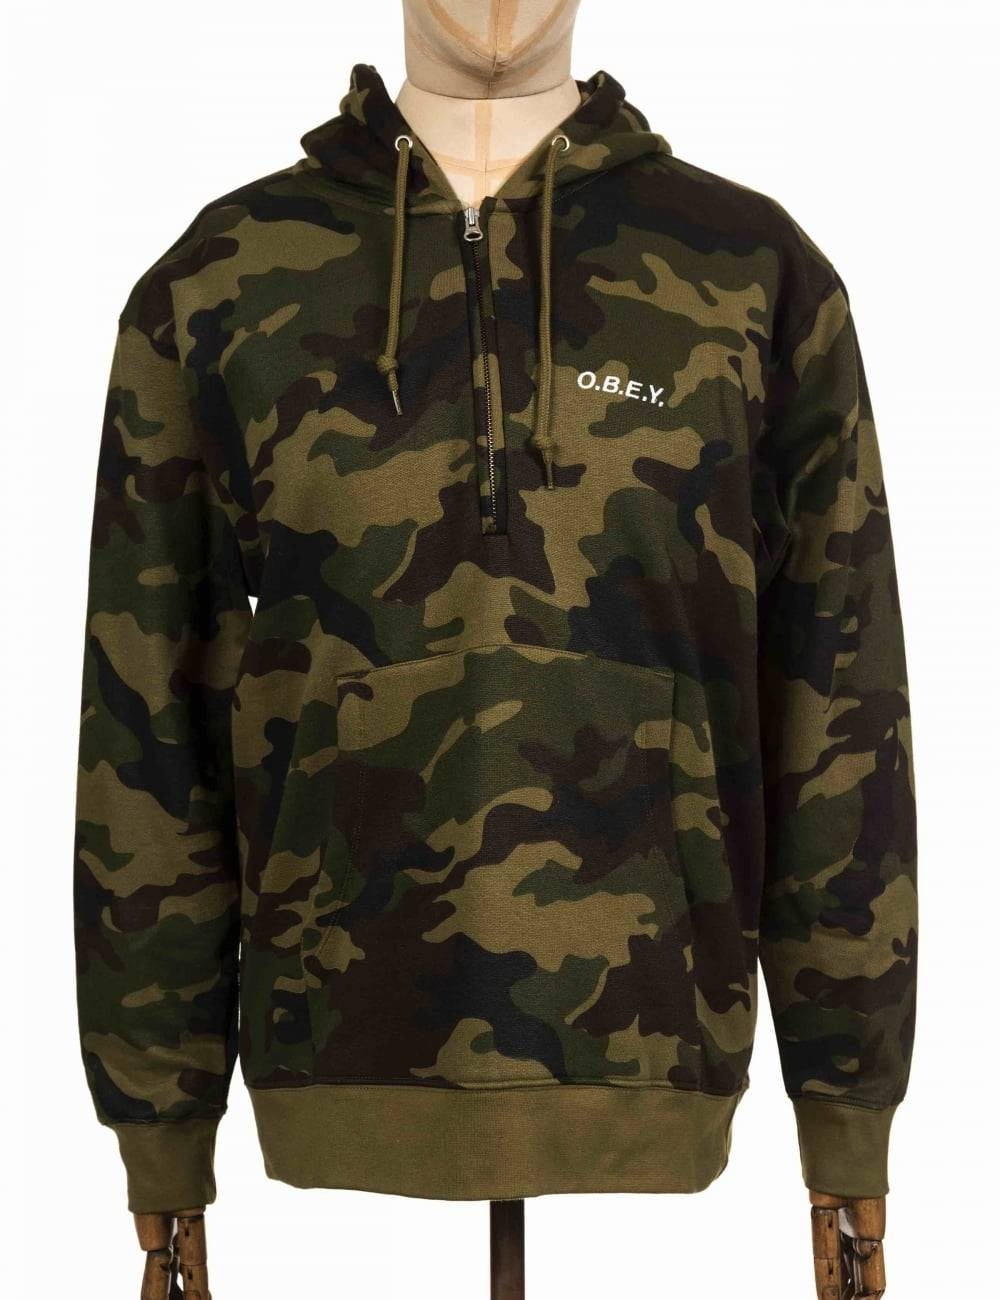 Obey Clothing Ennett Zip Hooded Sweat - Camo Size: Small, Colour: Camo